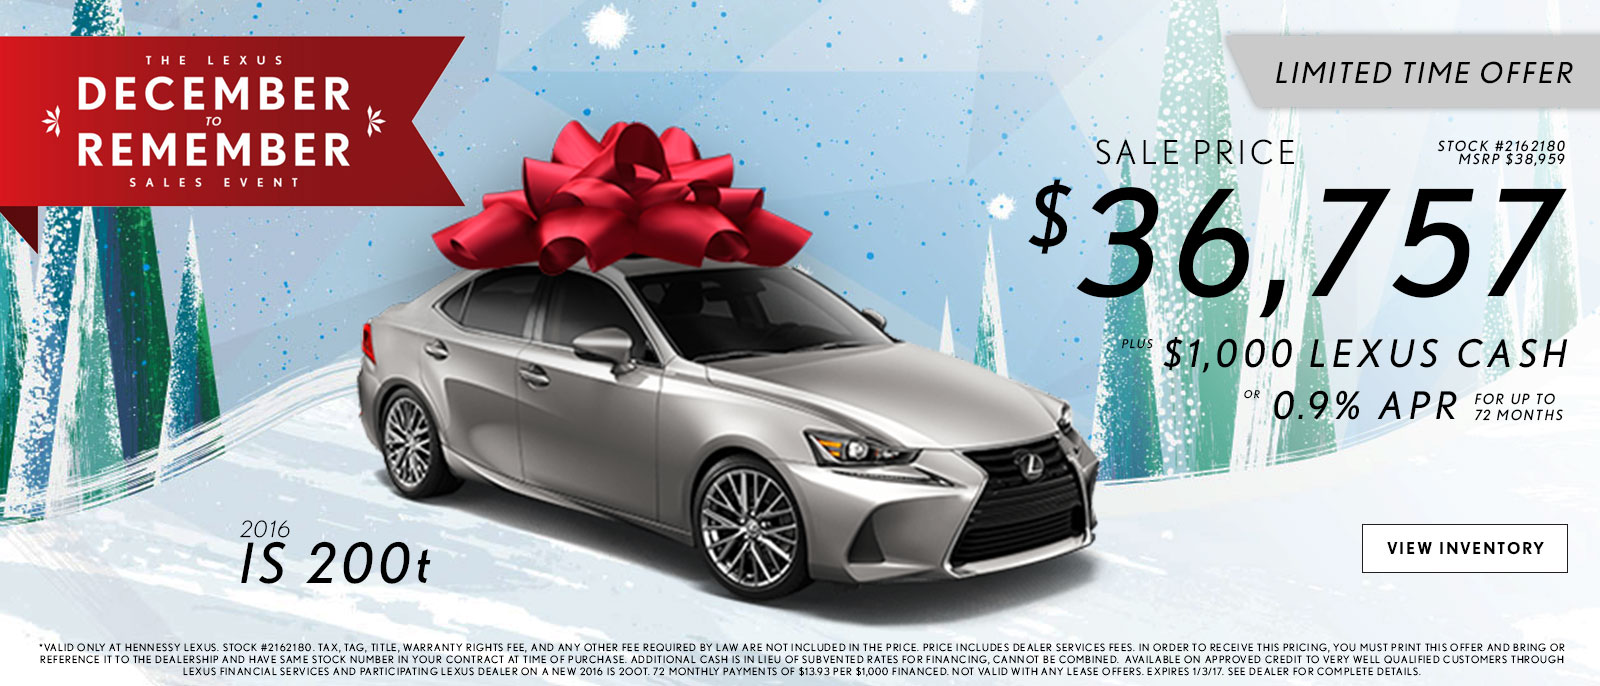 Lexus December to Remember IS Offers